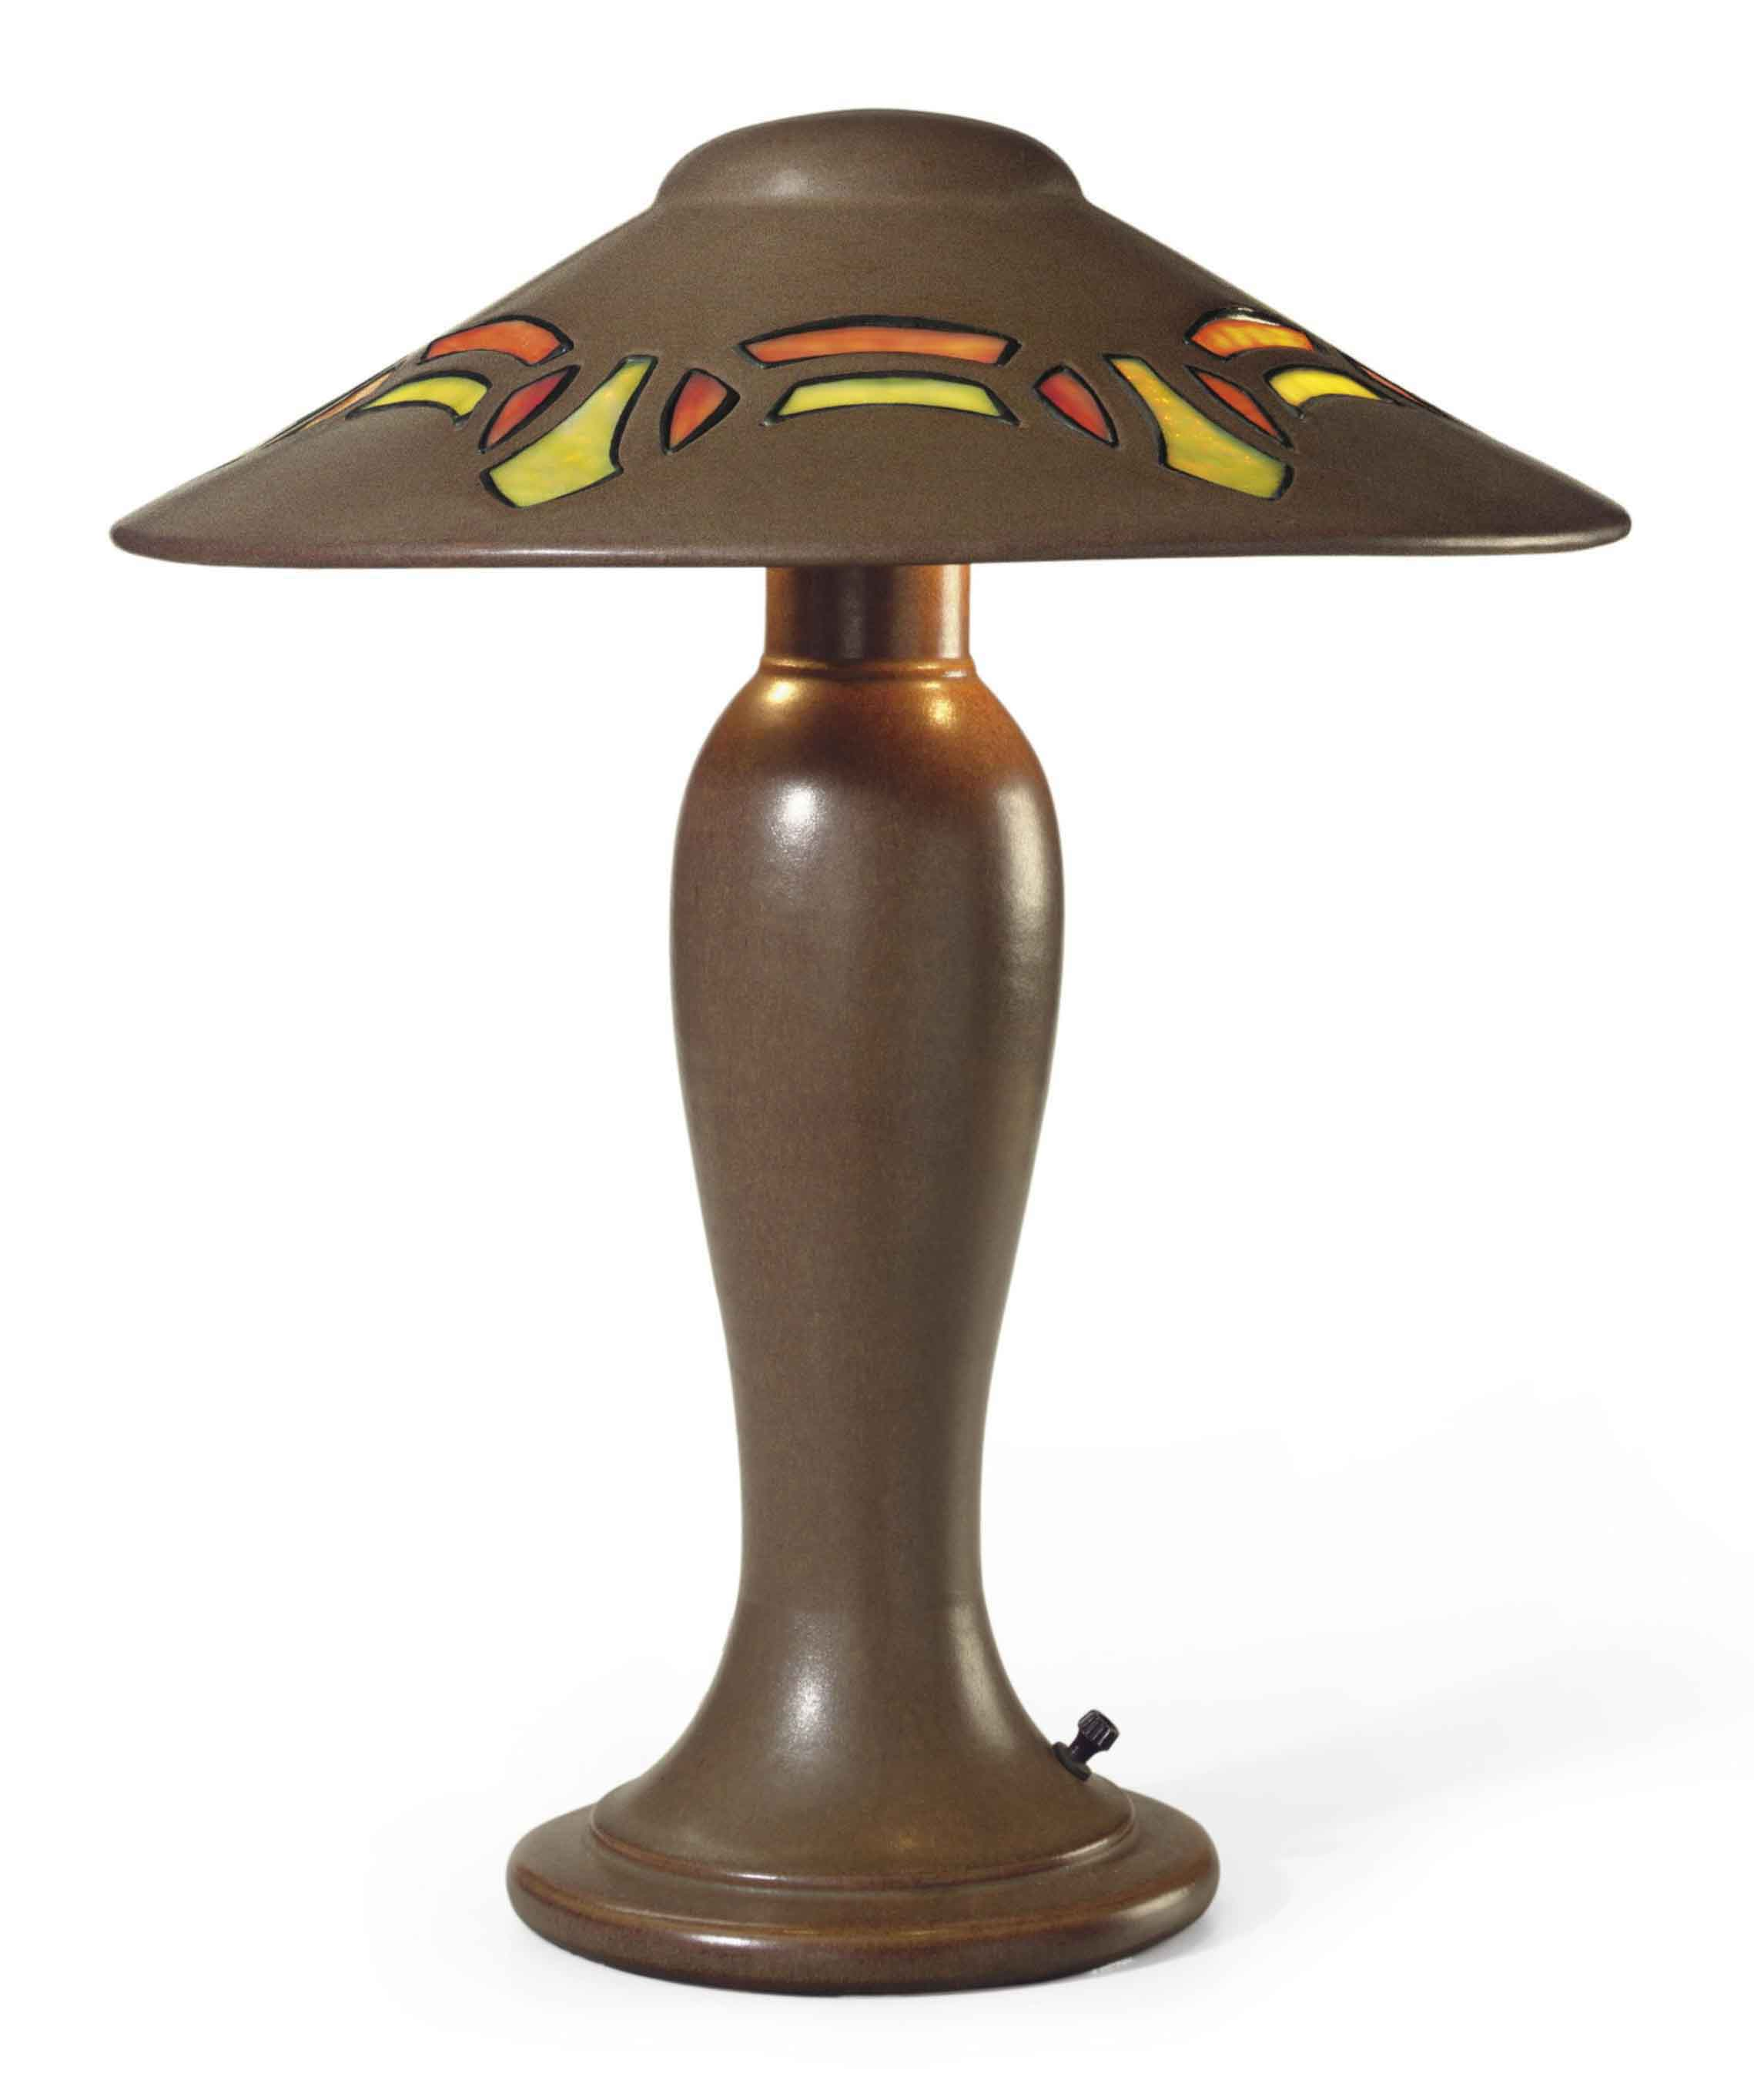 AN AMERICAN ARTS AND CRAFTS STONEWARE AND GLASS 'VASEKRAFT' TABLE LAMP,